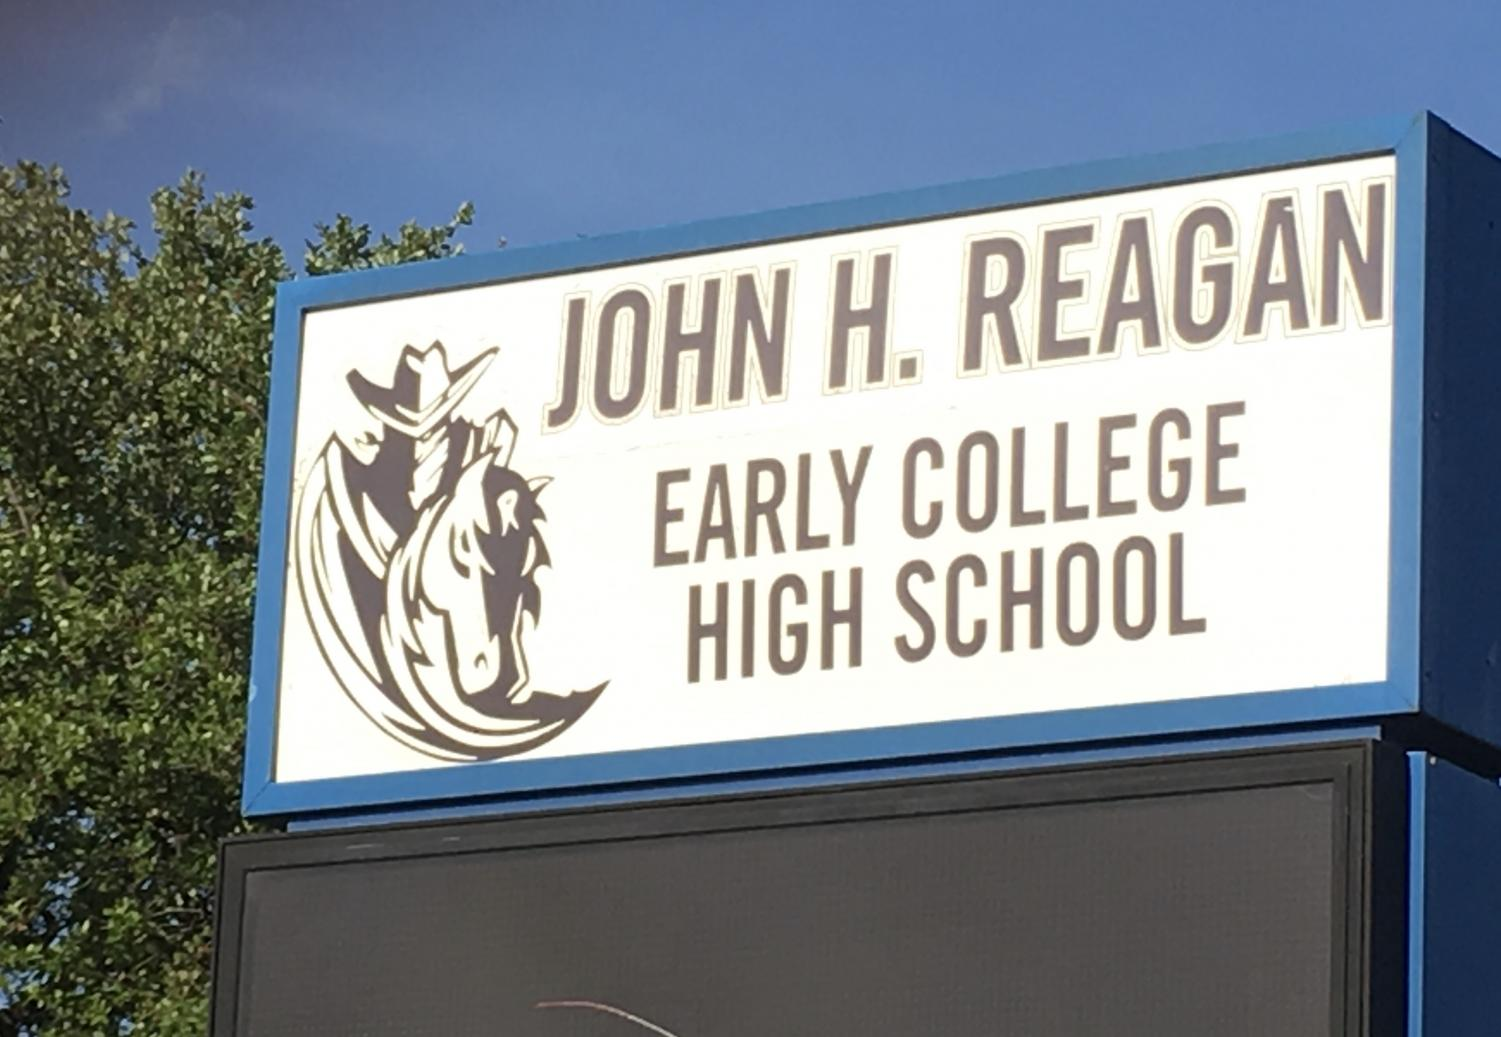 The marquee of Reagan High School Early High School will have to be changed after the Board of Trustees voted to rename the school Northeast High School.